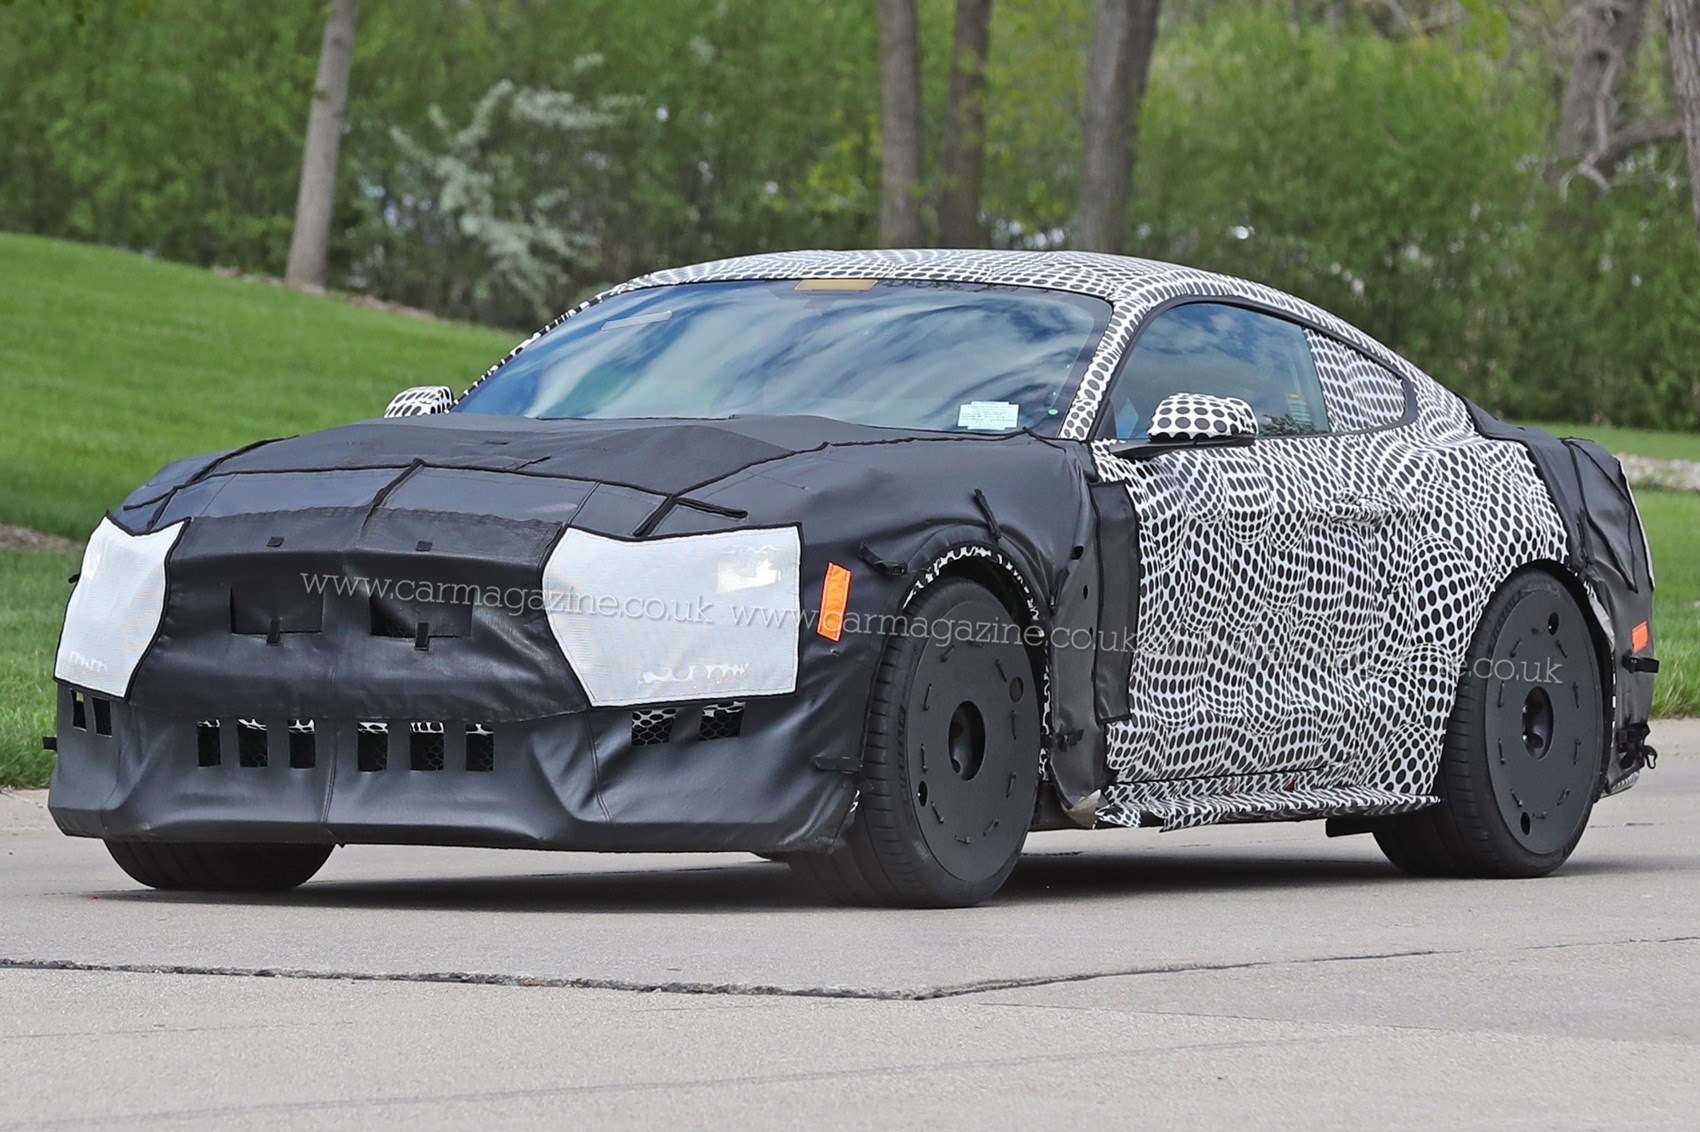 Ford Mustang Gt500 2018 Spy Shots And First Details Car Magazine